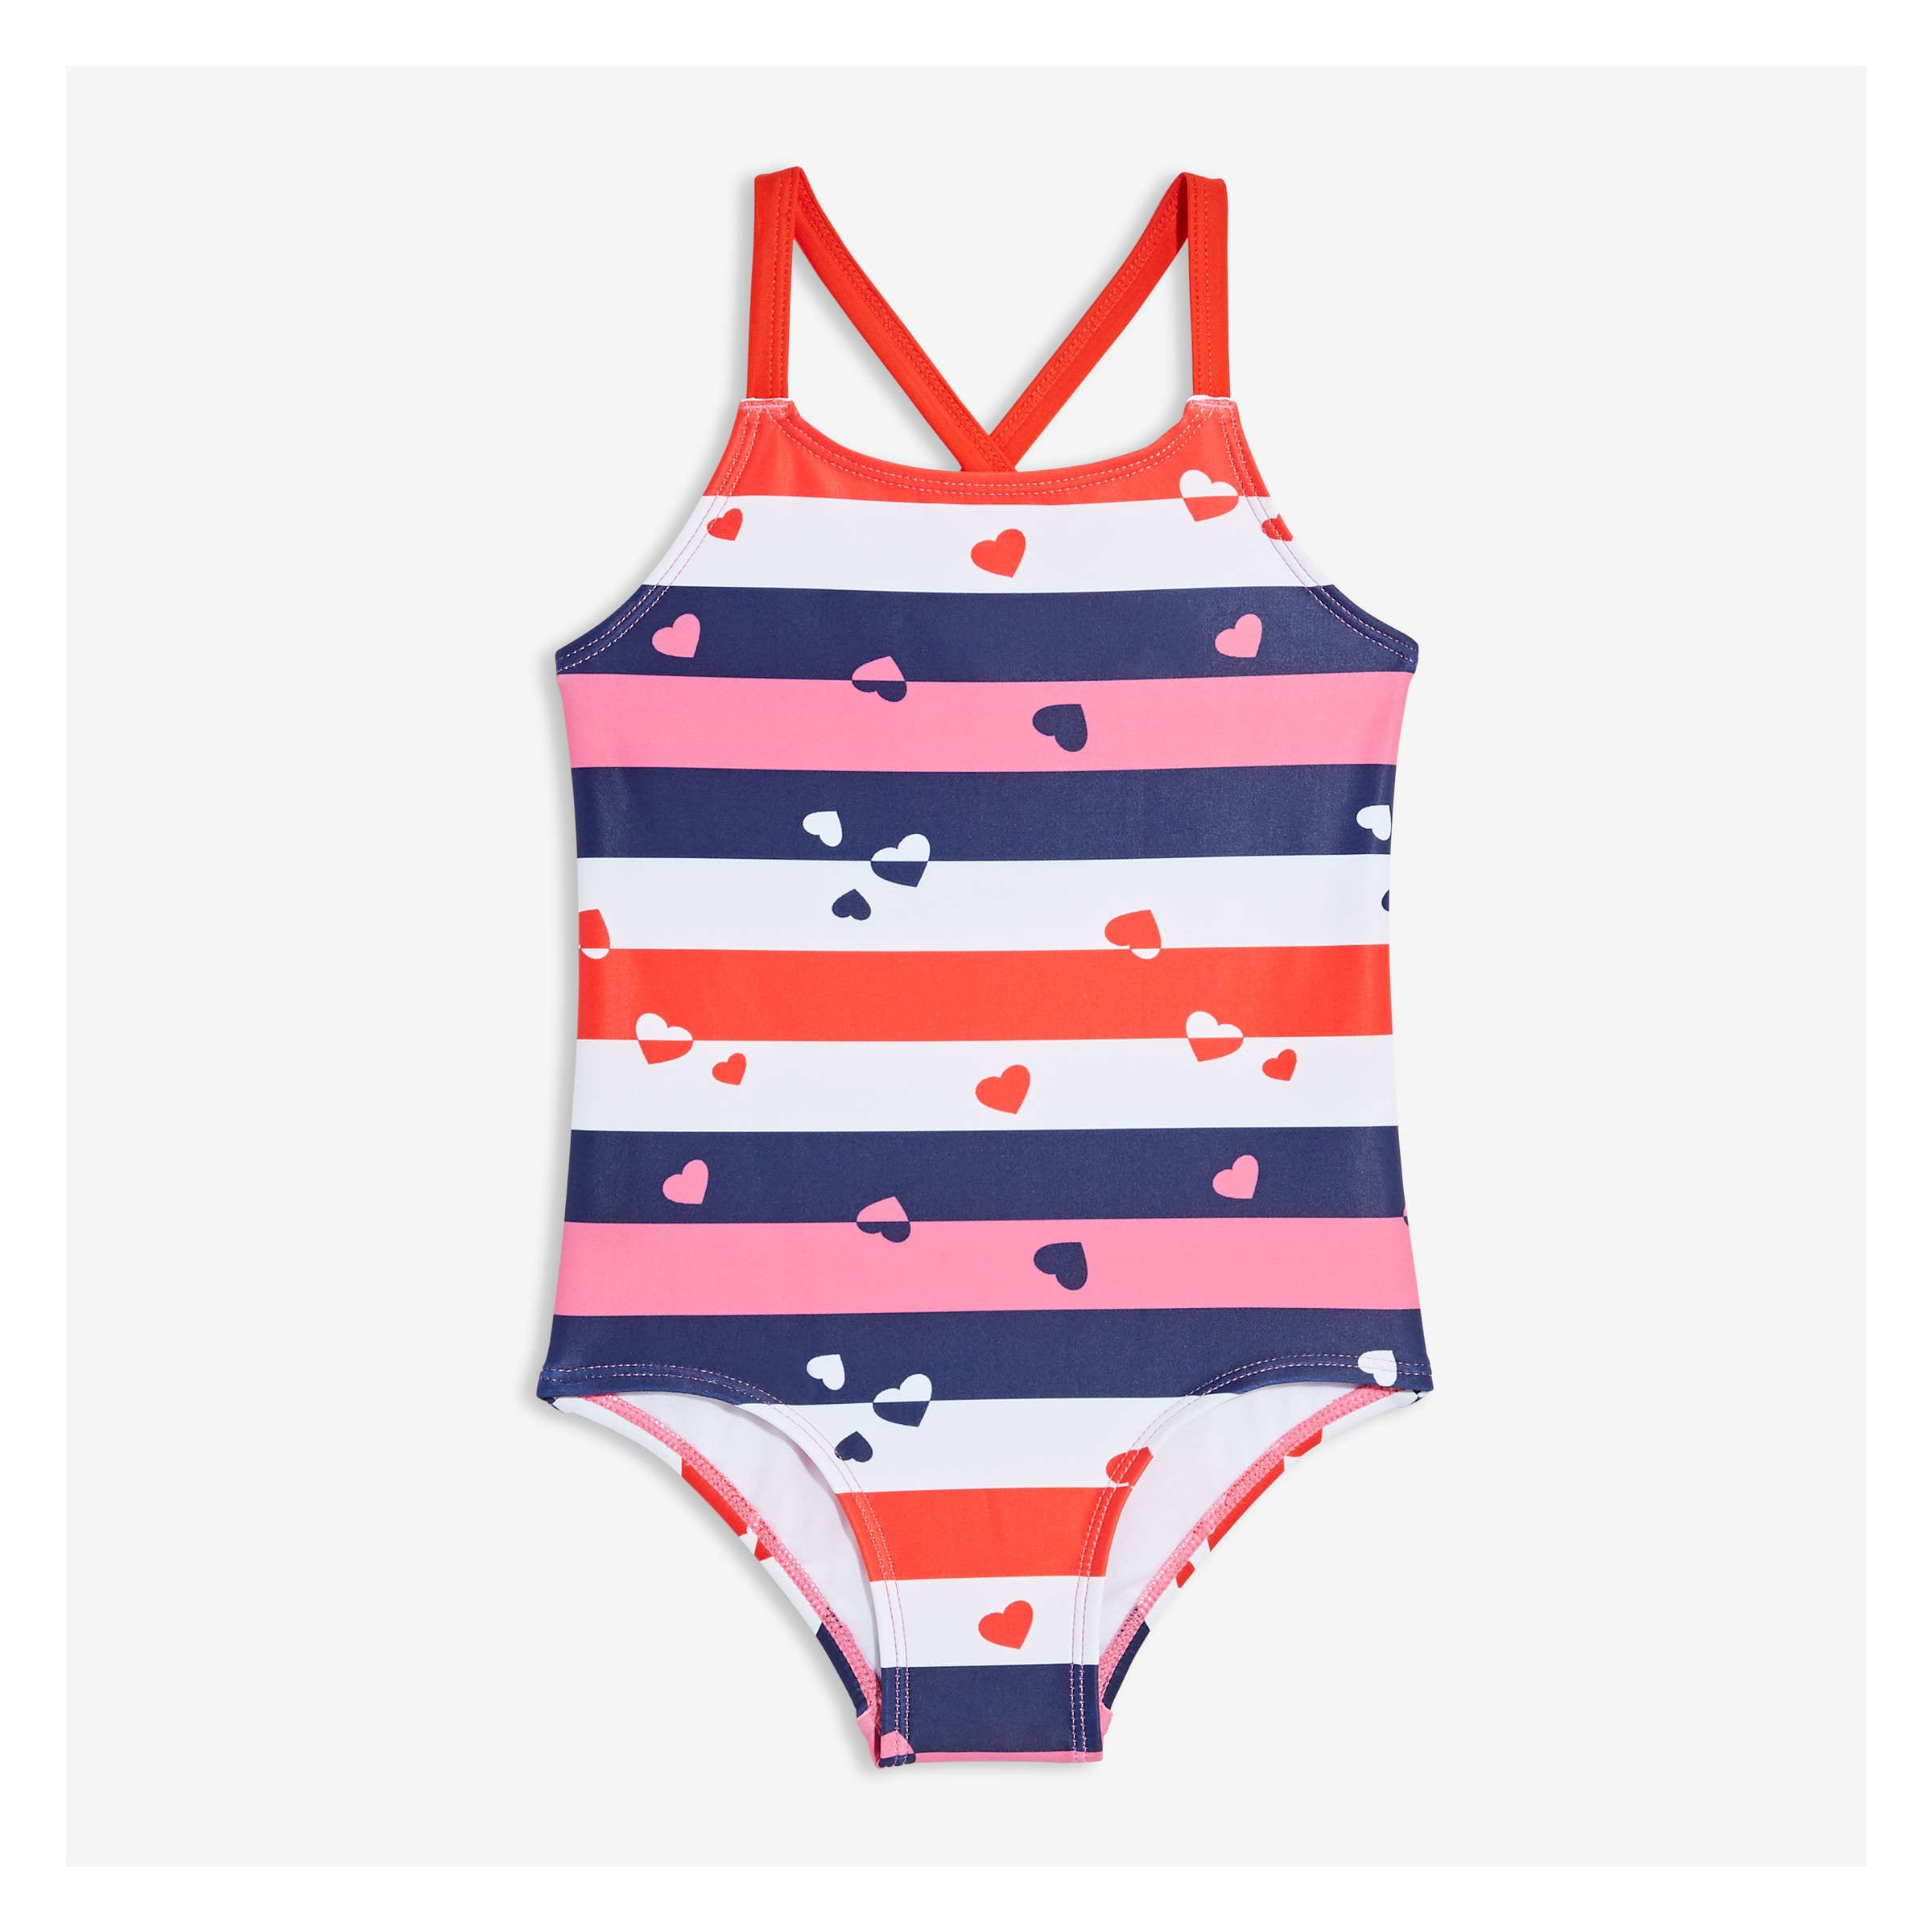 17f13c69e67b6 Toddler Girls' One Piece Swimsuit in Red from Joe Fresh